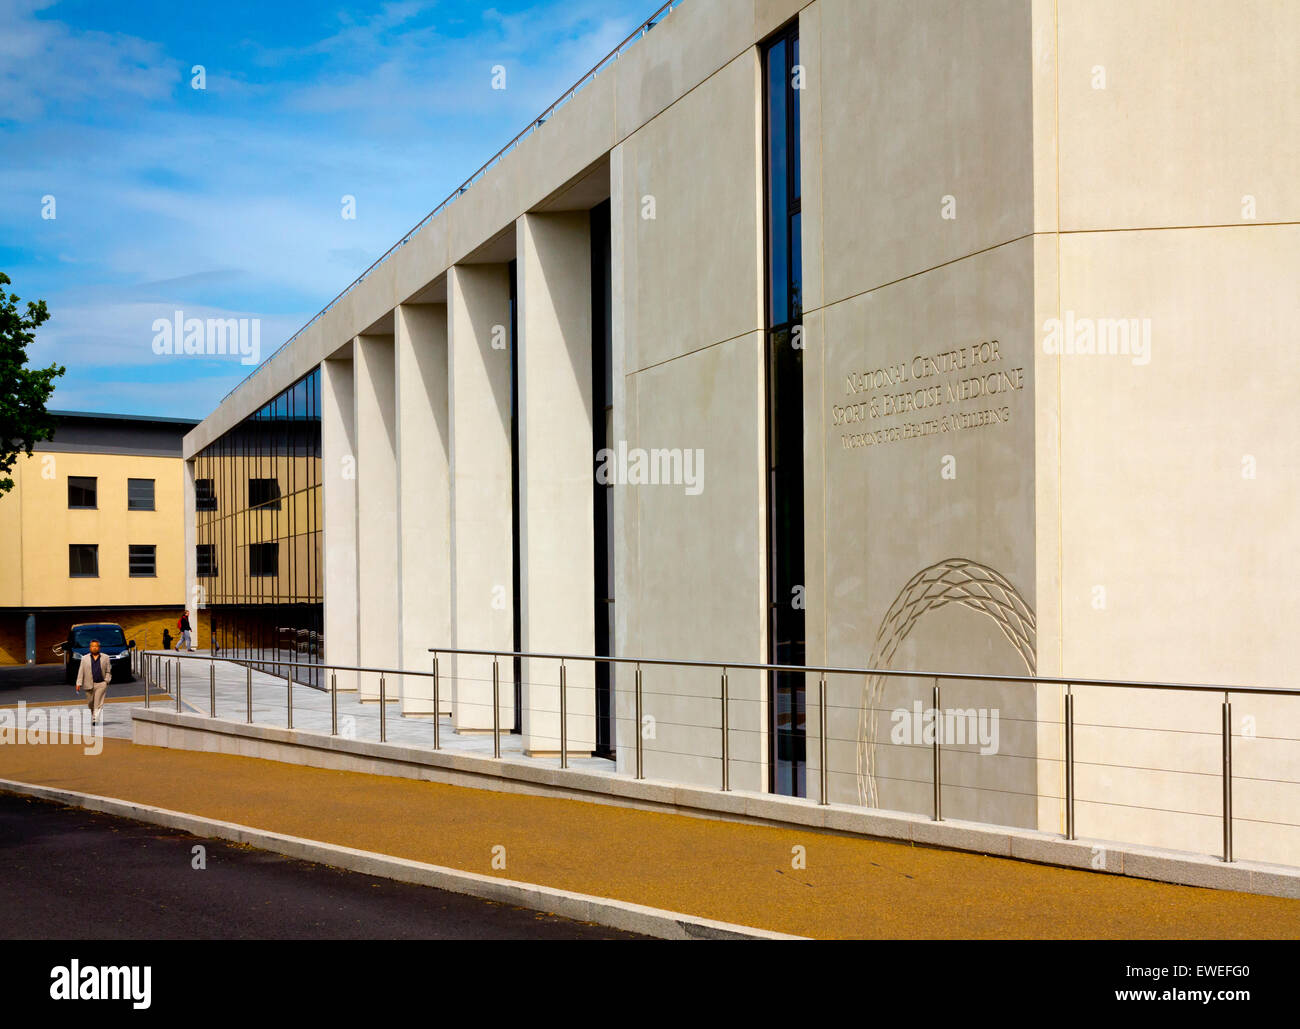 Loughborough university stock photos loughborough - Loughborough university swimming pool ...